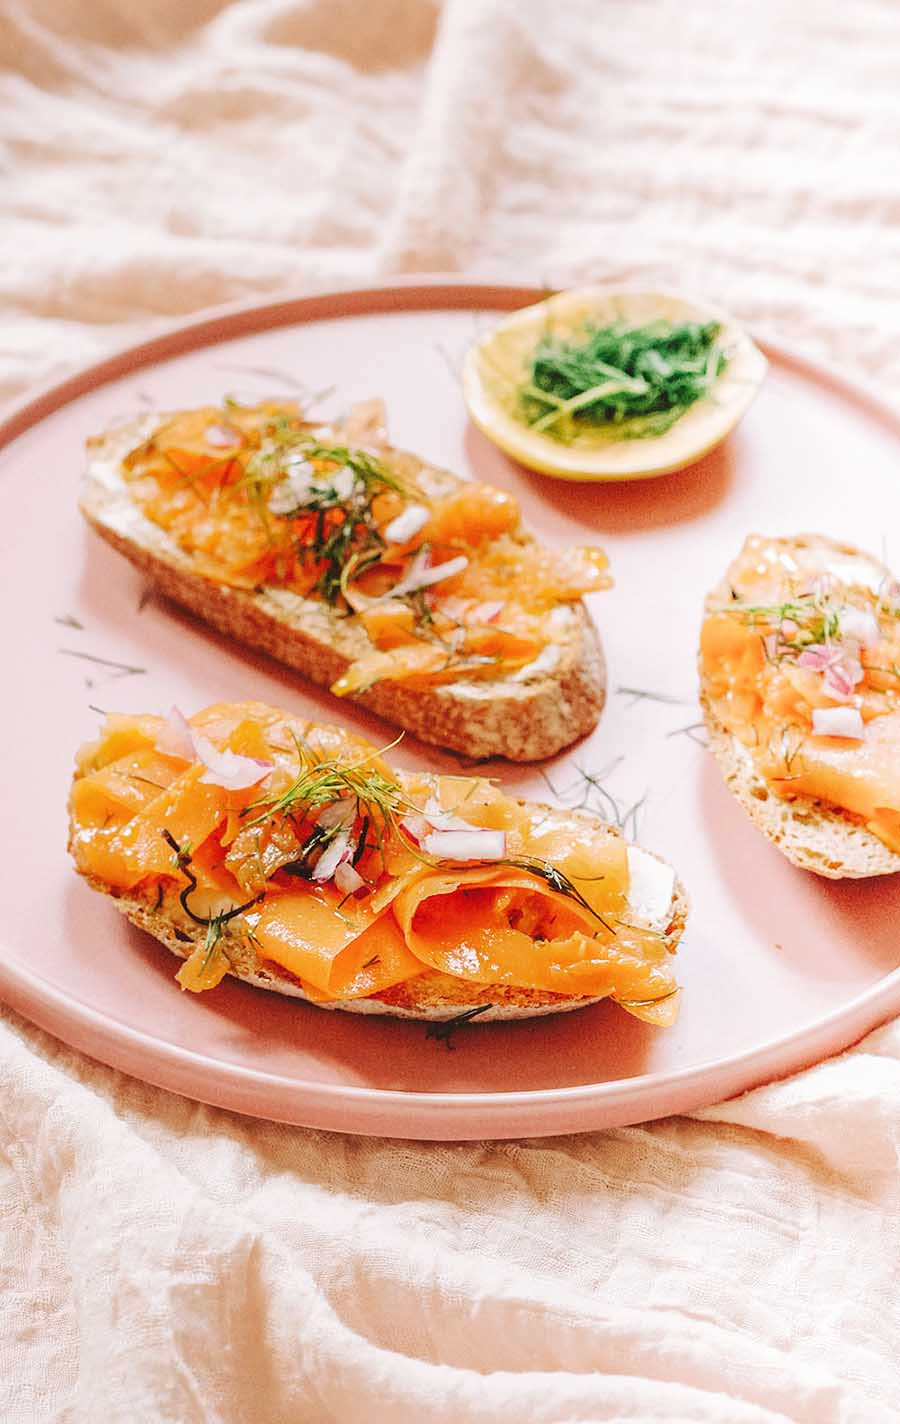 A pink plate with three pieces of toast topped with vegan smoked salmon.